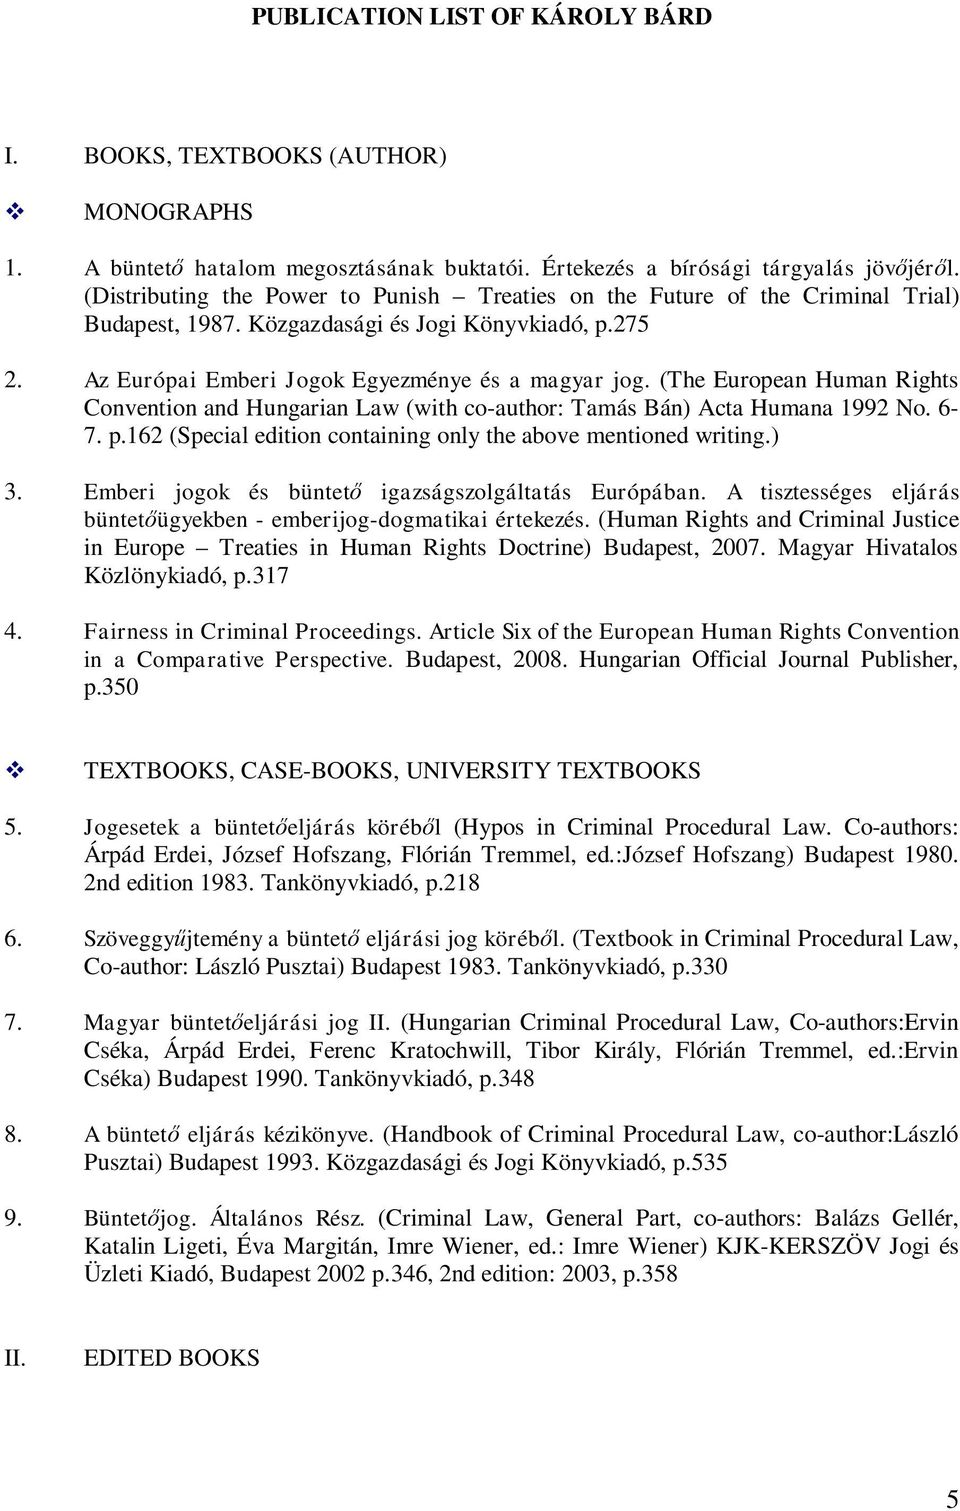 (The European Human Rights Convention and Hungarian Law (with co-author: Tamás Bán) Acta Humana 1992 No. 6-7. p.162 (Special edition containing only the above mentioned writing.) 3.